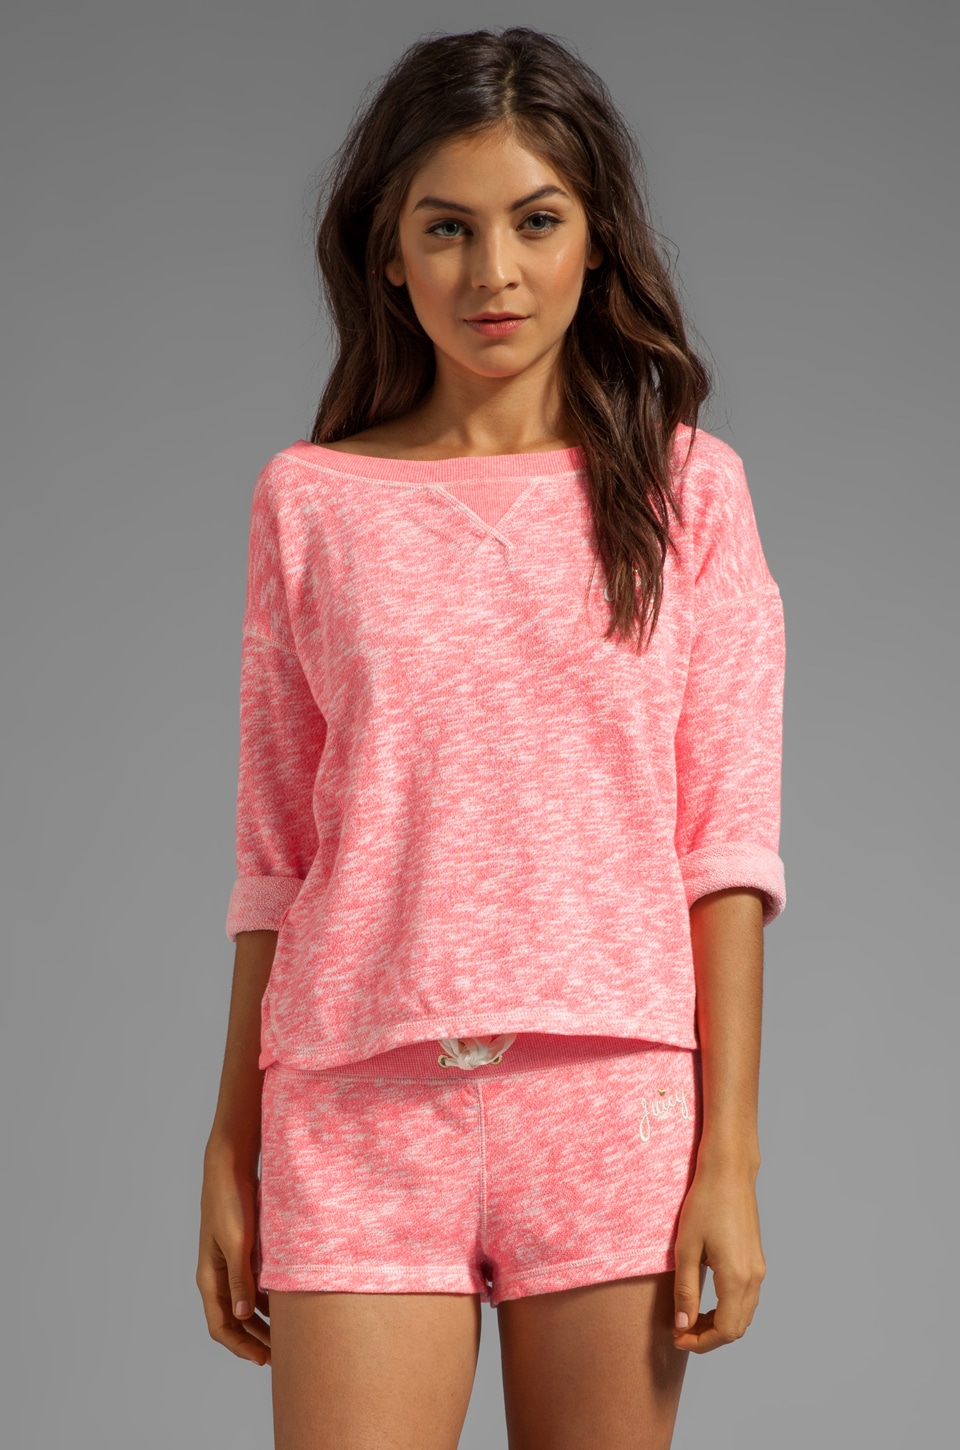 Juicy Couture Marled French Terry Pullover in Marled Geranium